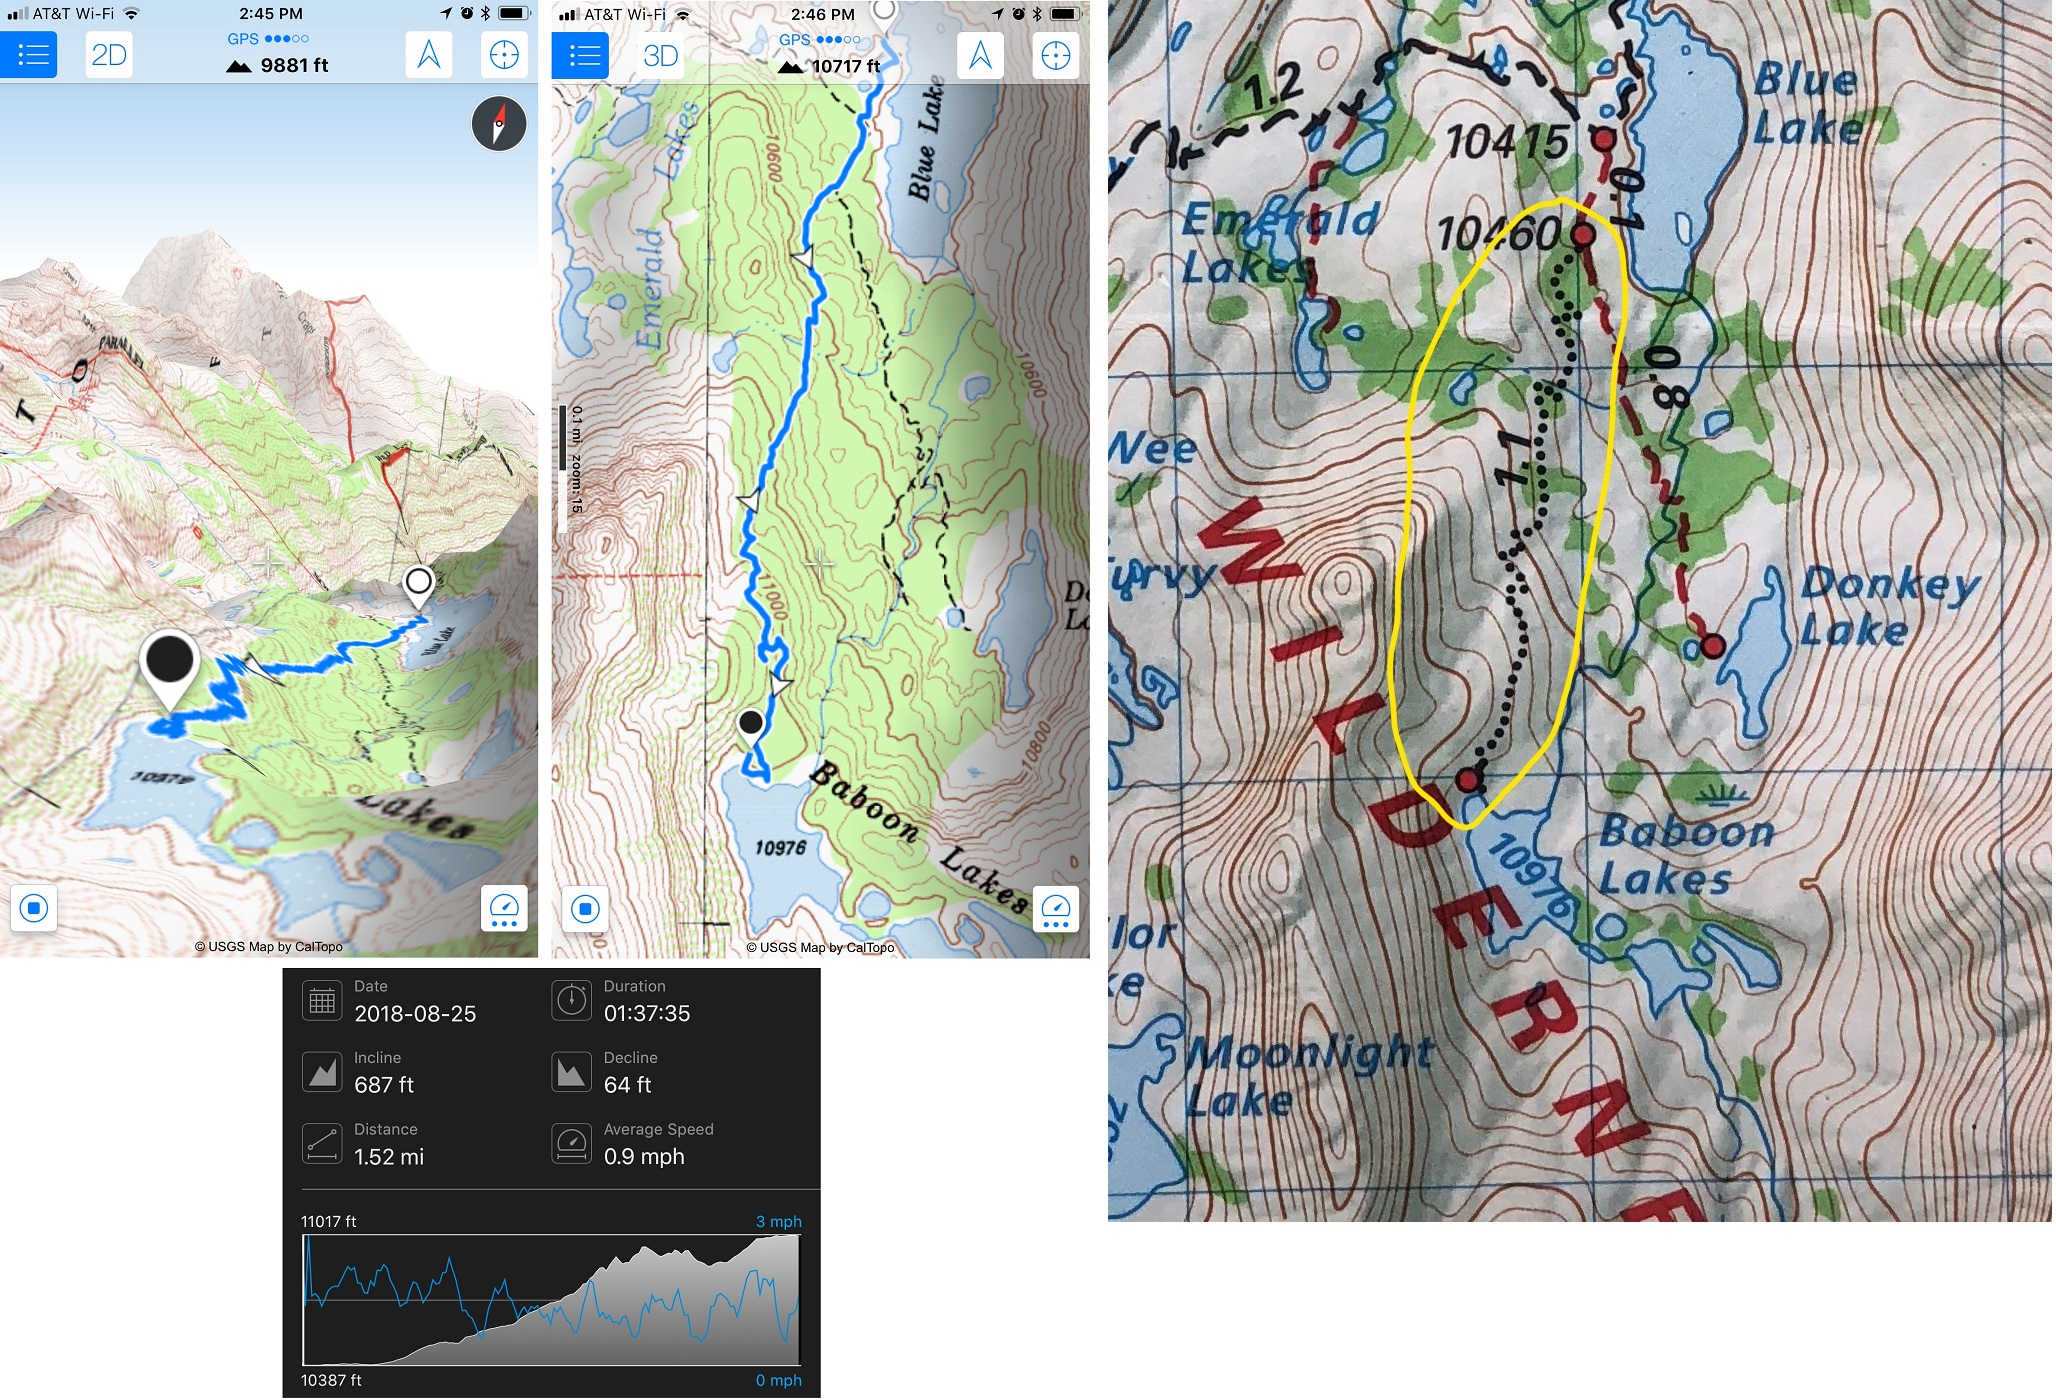 GPS data and map showing trail to Baboon Lakes